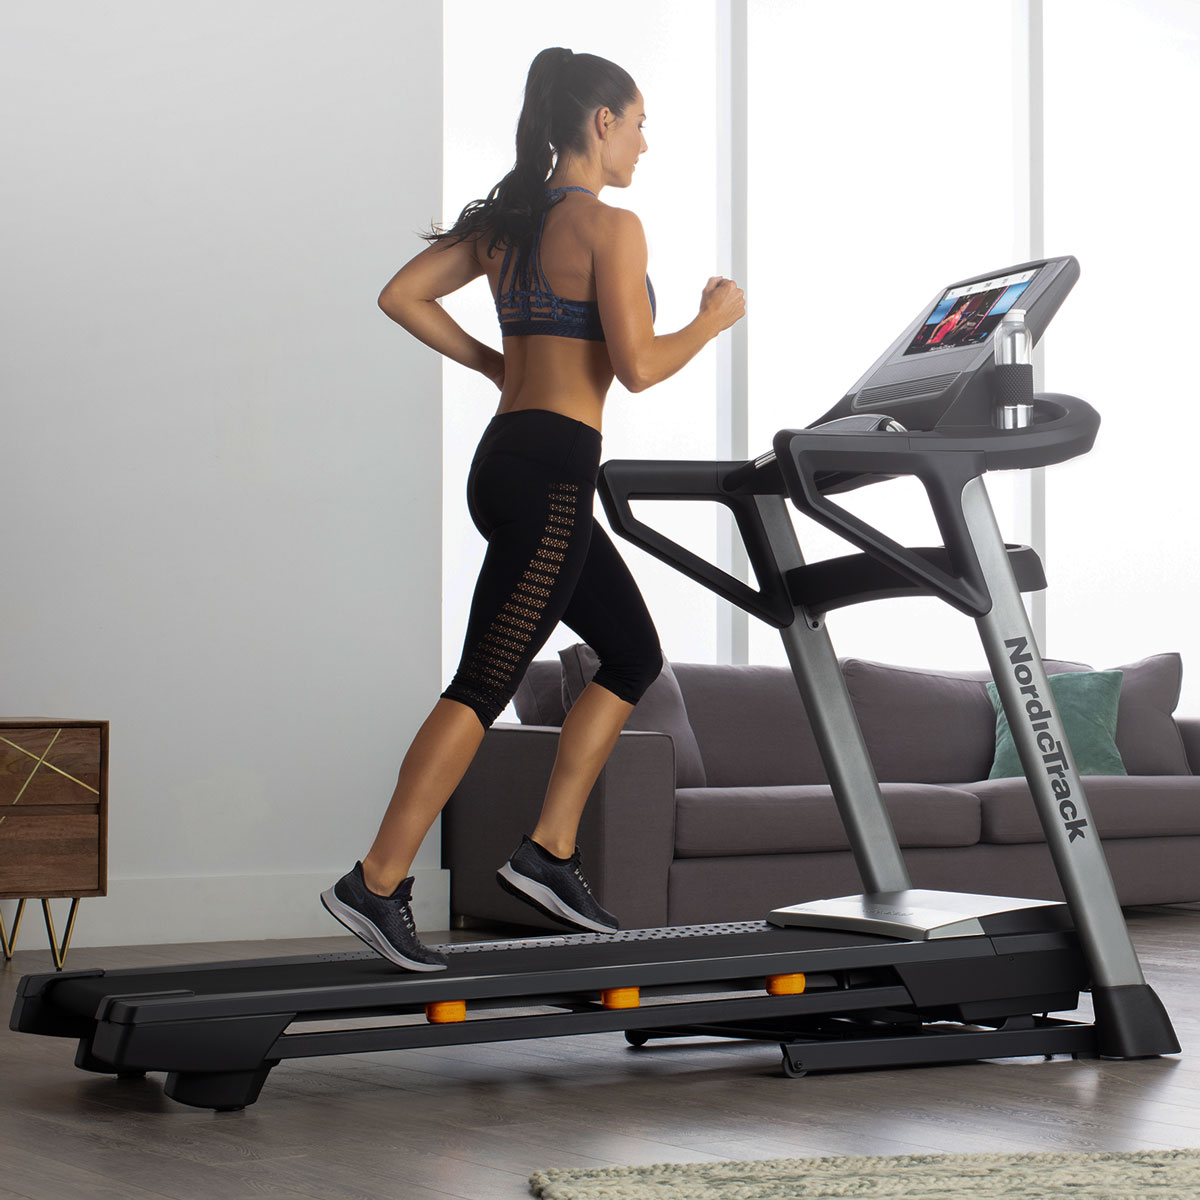 Lets do it with a  Nordictrack T 9.5 S Treadmill  powered by iFit to kick-off your fitness goals. Same as  the T 8.5 S  but features a 14 inch screen vs. 10 inches